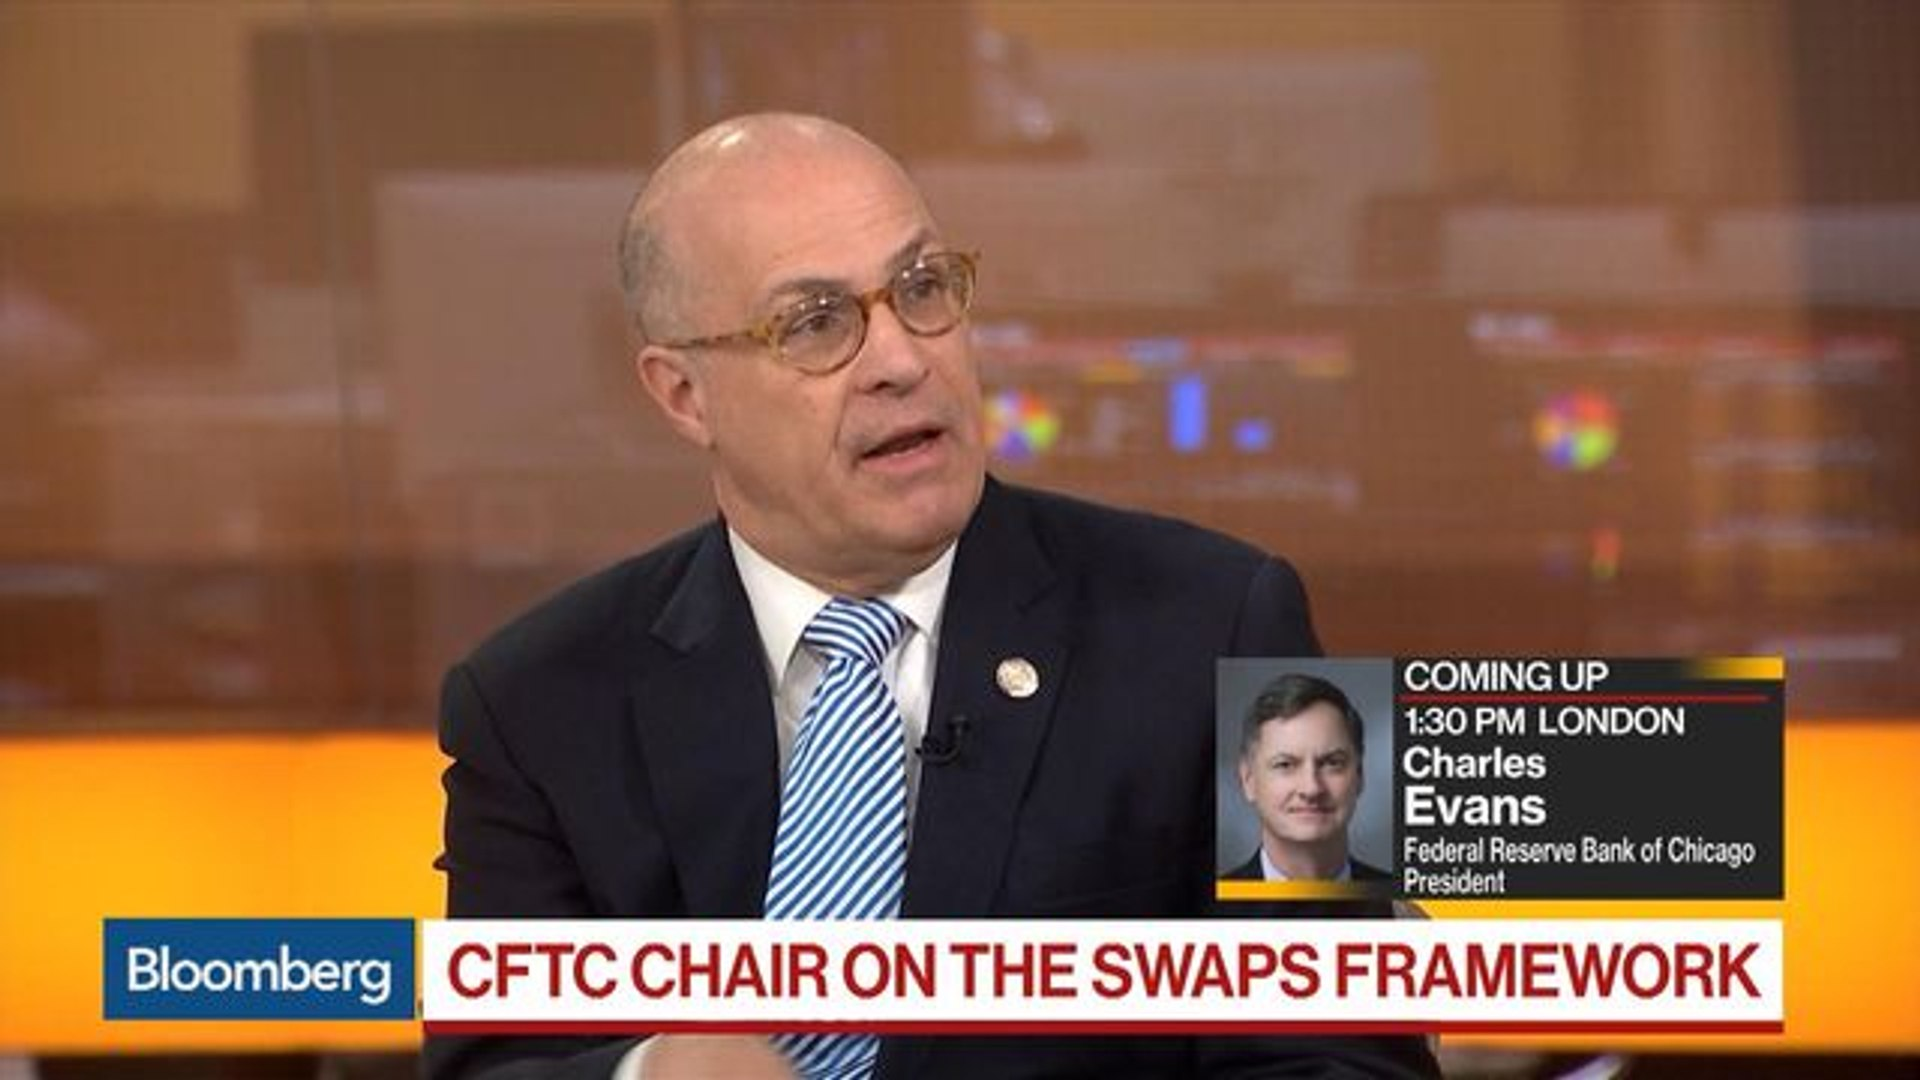 CFTC's Giancarlo on Fed Policy, Liquidity, Swaps Framework, Blockchain